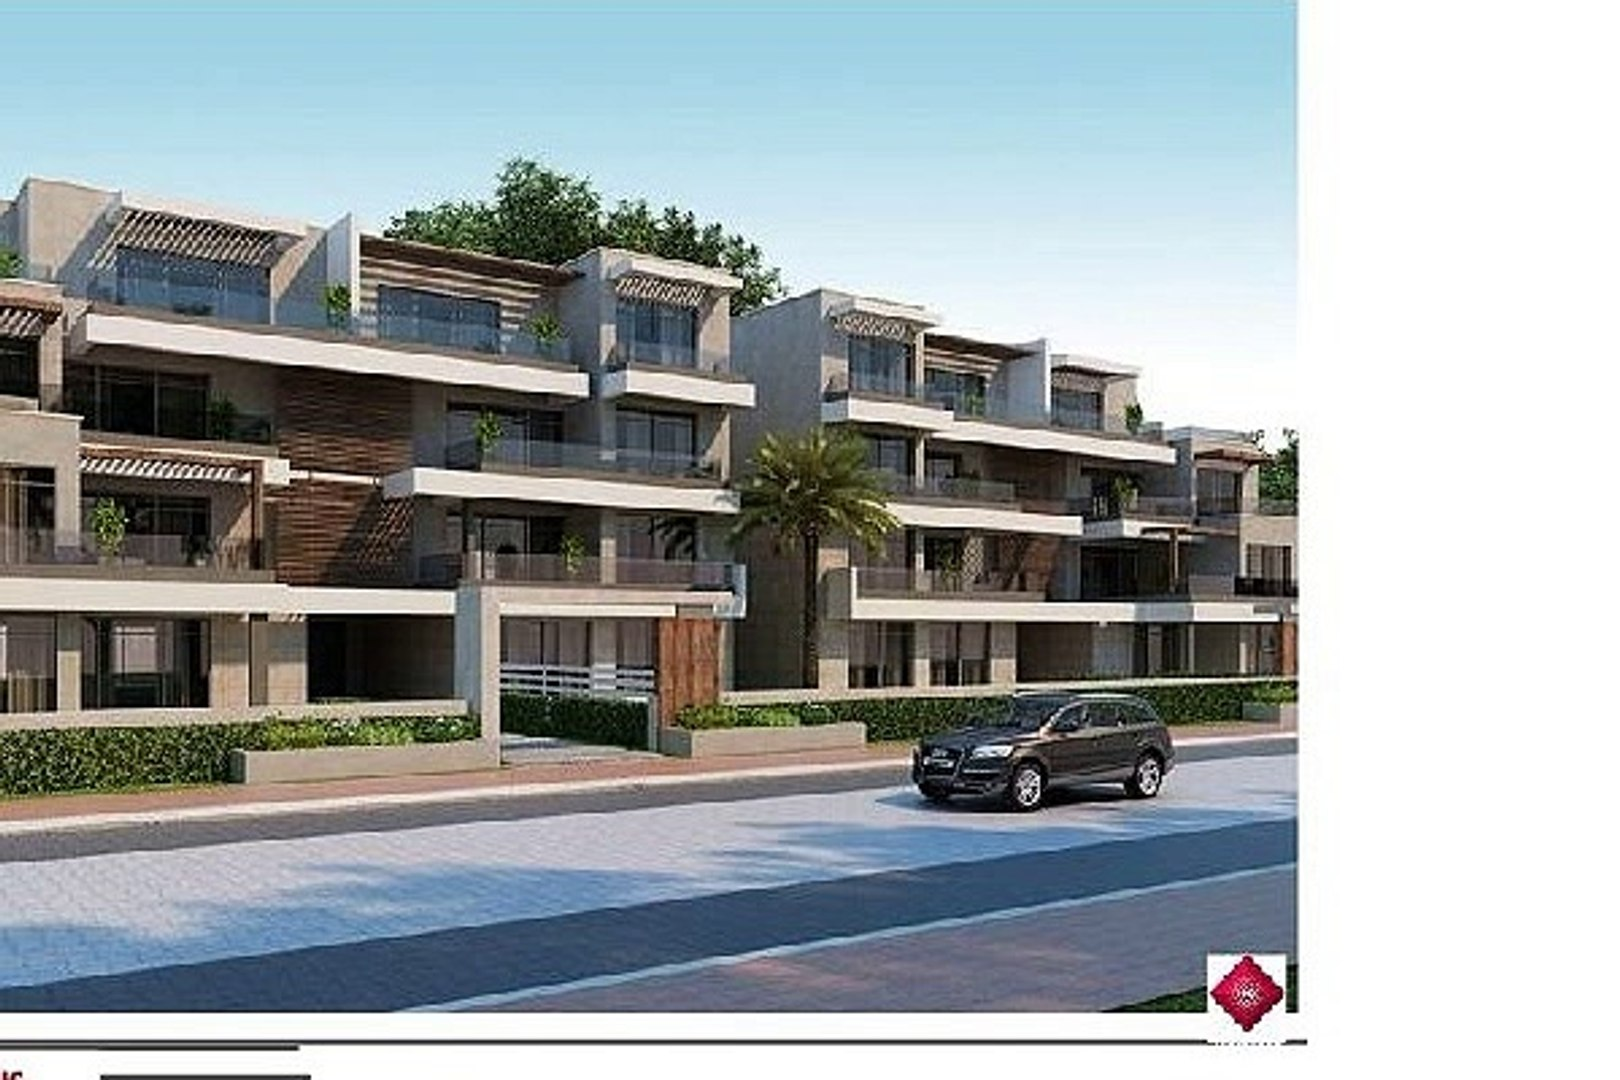 capital gardens 186m with 118m garden corner 650k remaining 1 2 million with installments 7 years